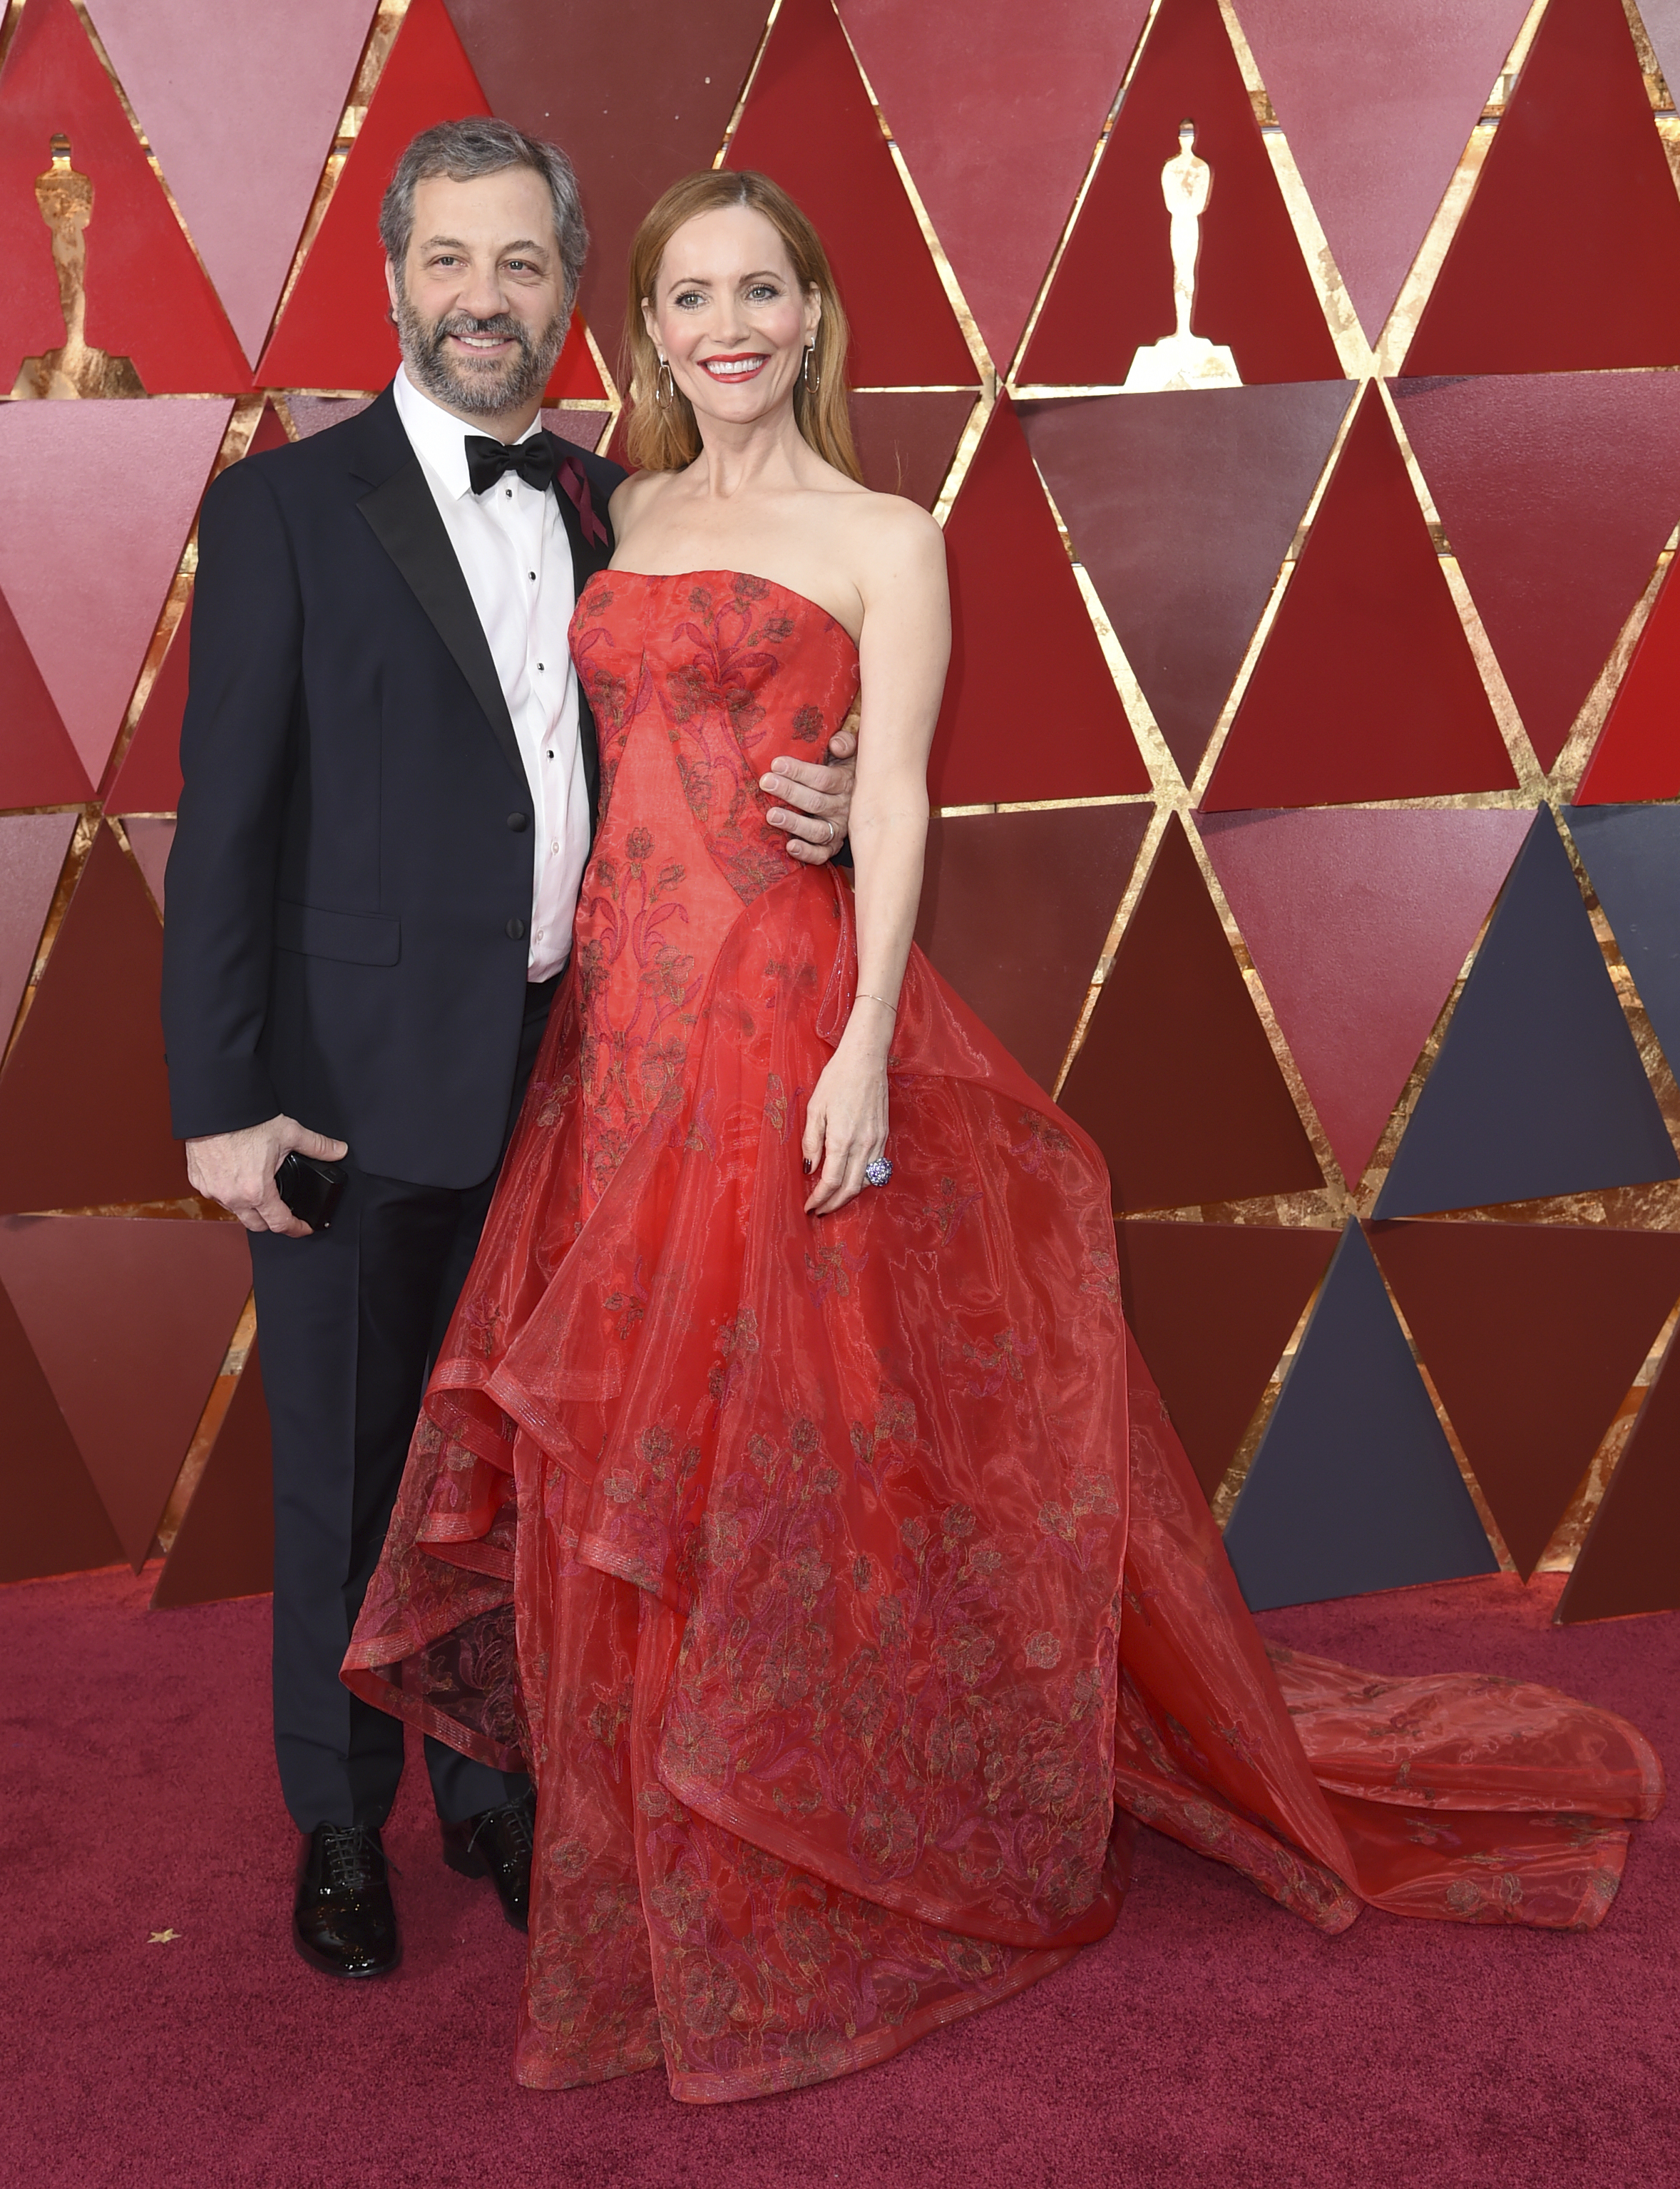 <div class='meta'><div class='origin-logo' data-origin='none'></div><span class='caption-text' data-credit='Richard Shotwell/Invision/AP'>Judd Apatow, left, and Leslie Mann arrive at the Oscars on Sunday, March 4, 2018, at the Dolby Theatre in Los Angeles.</span></div>